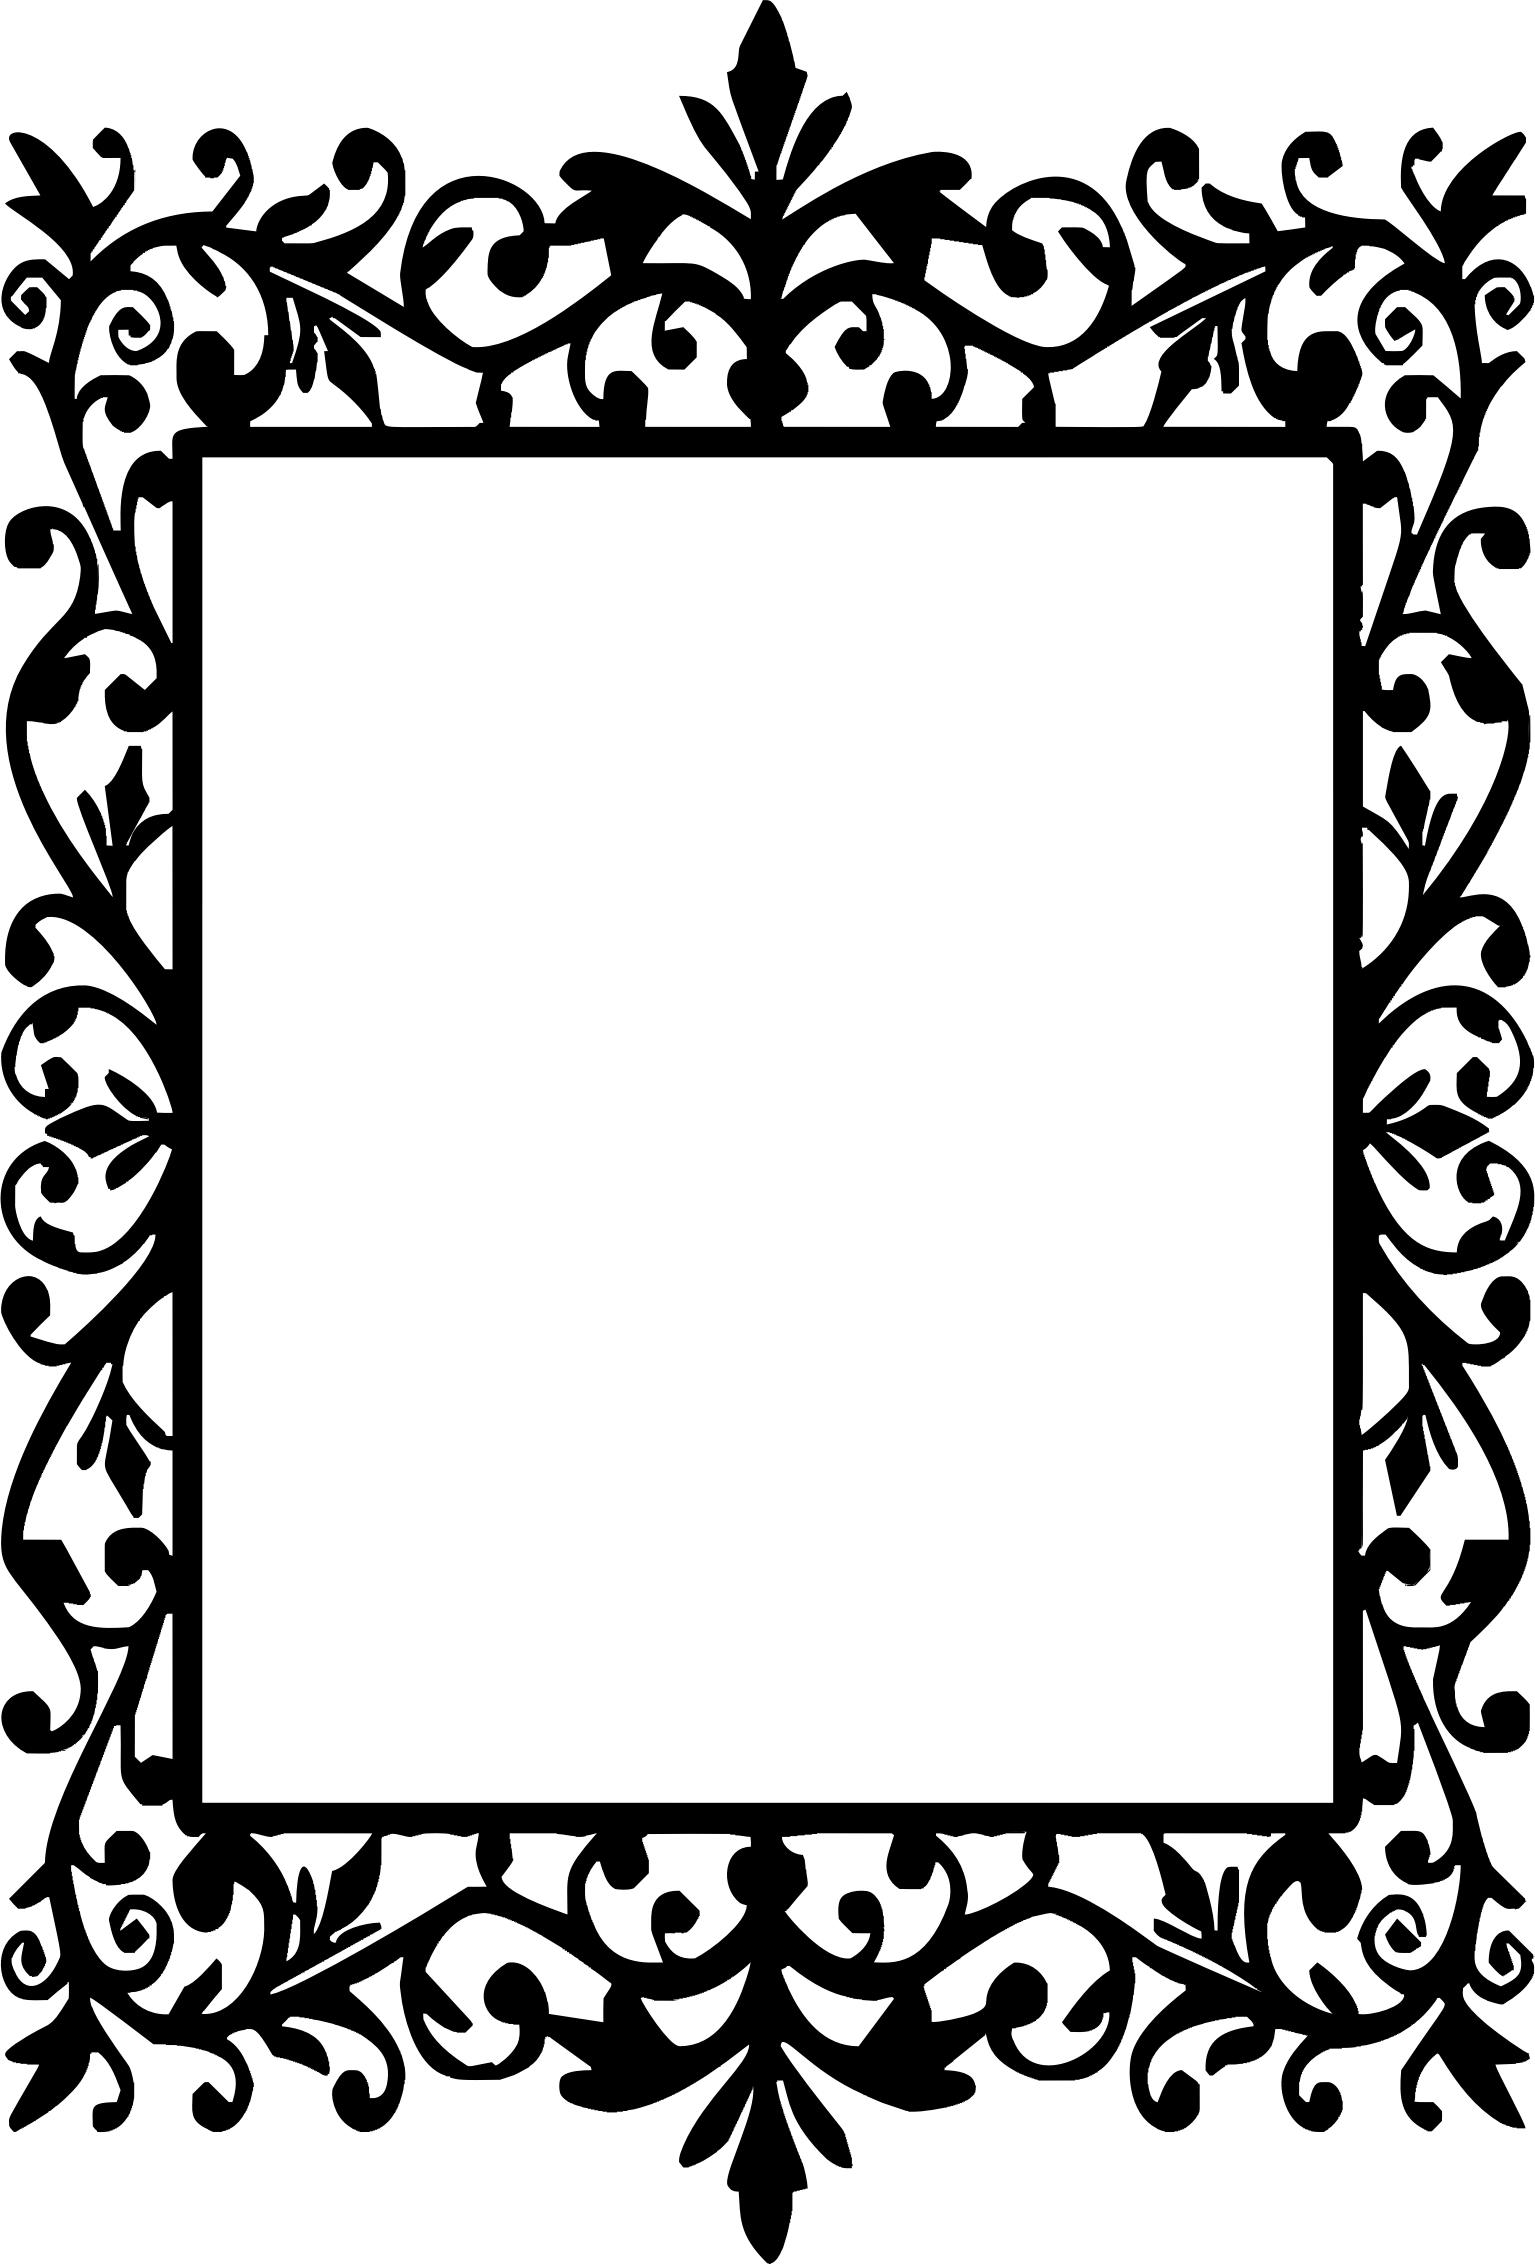 1535x2264 Decorative Floral Frame Silhouette Icons Png